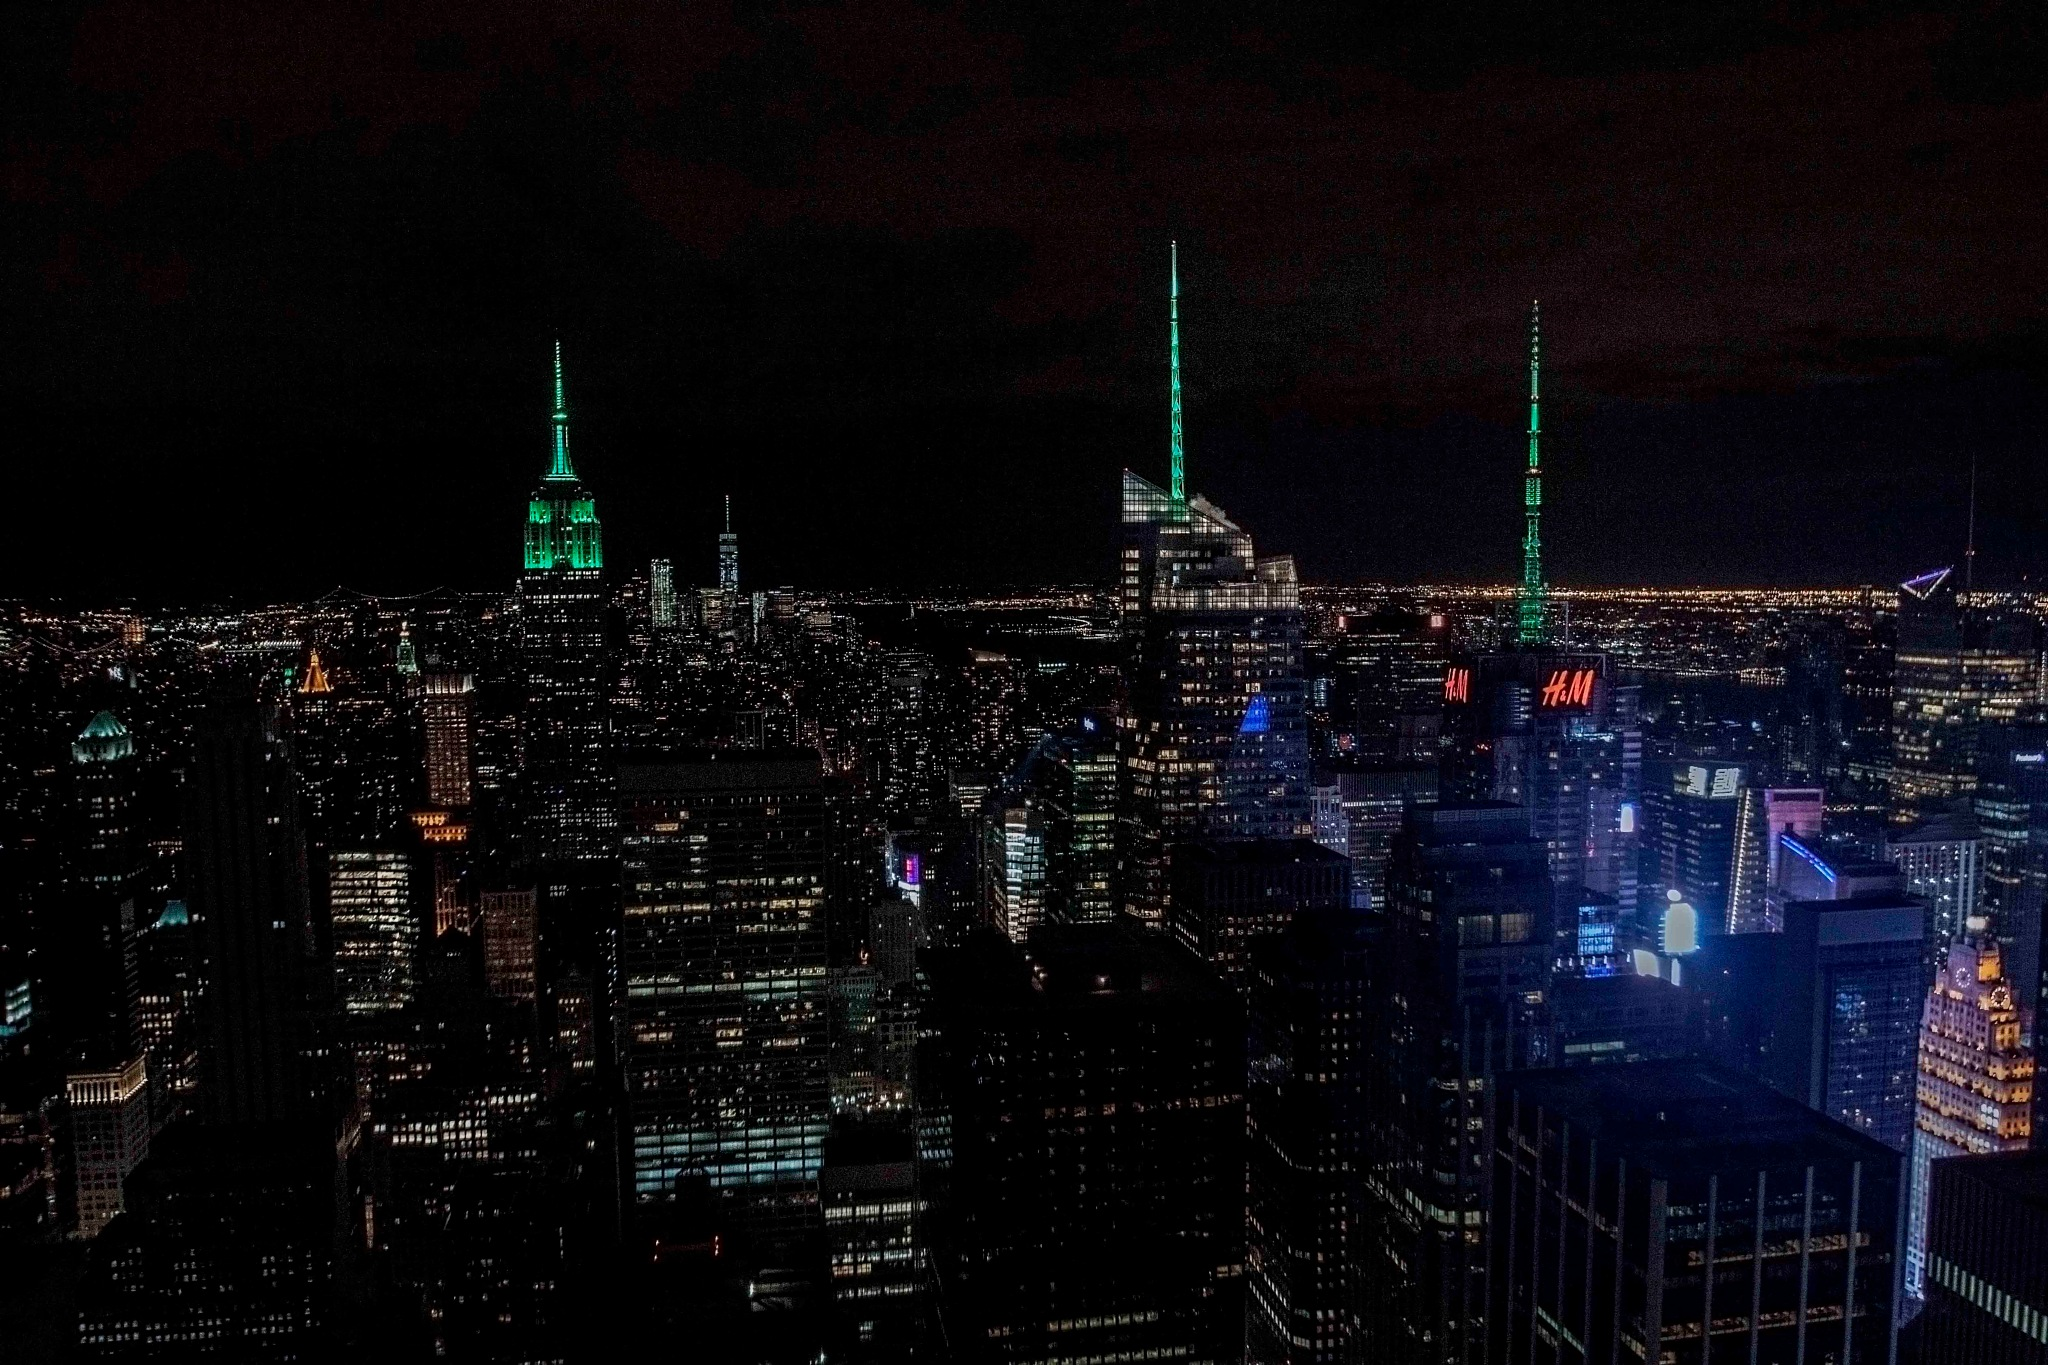 A classic night view of Manhattan NY by Jorge Nogales